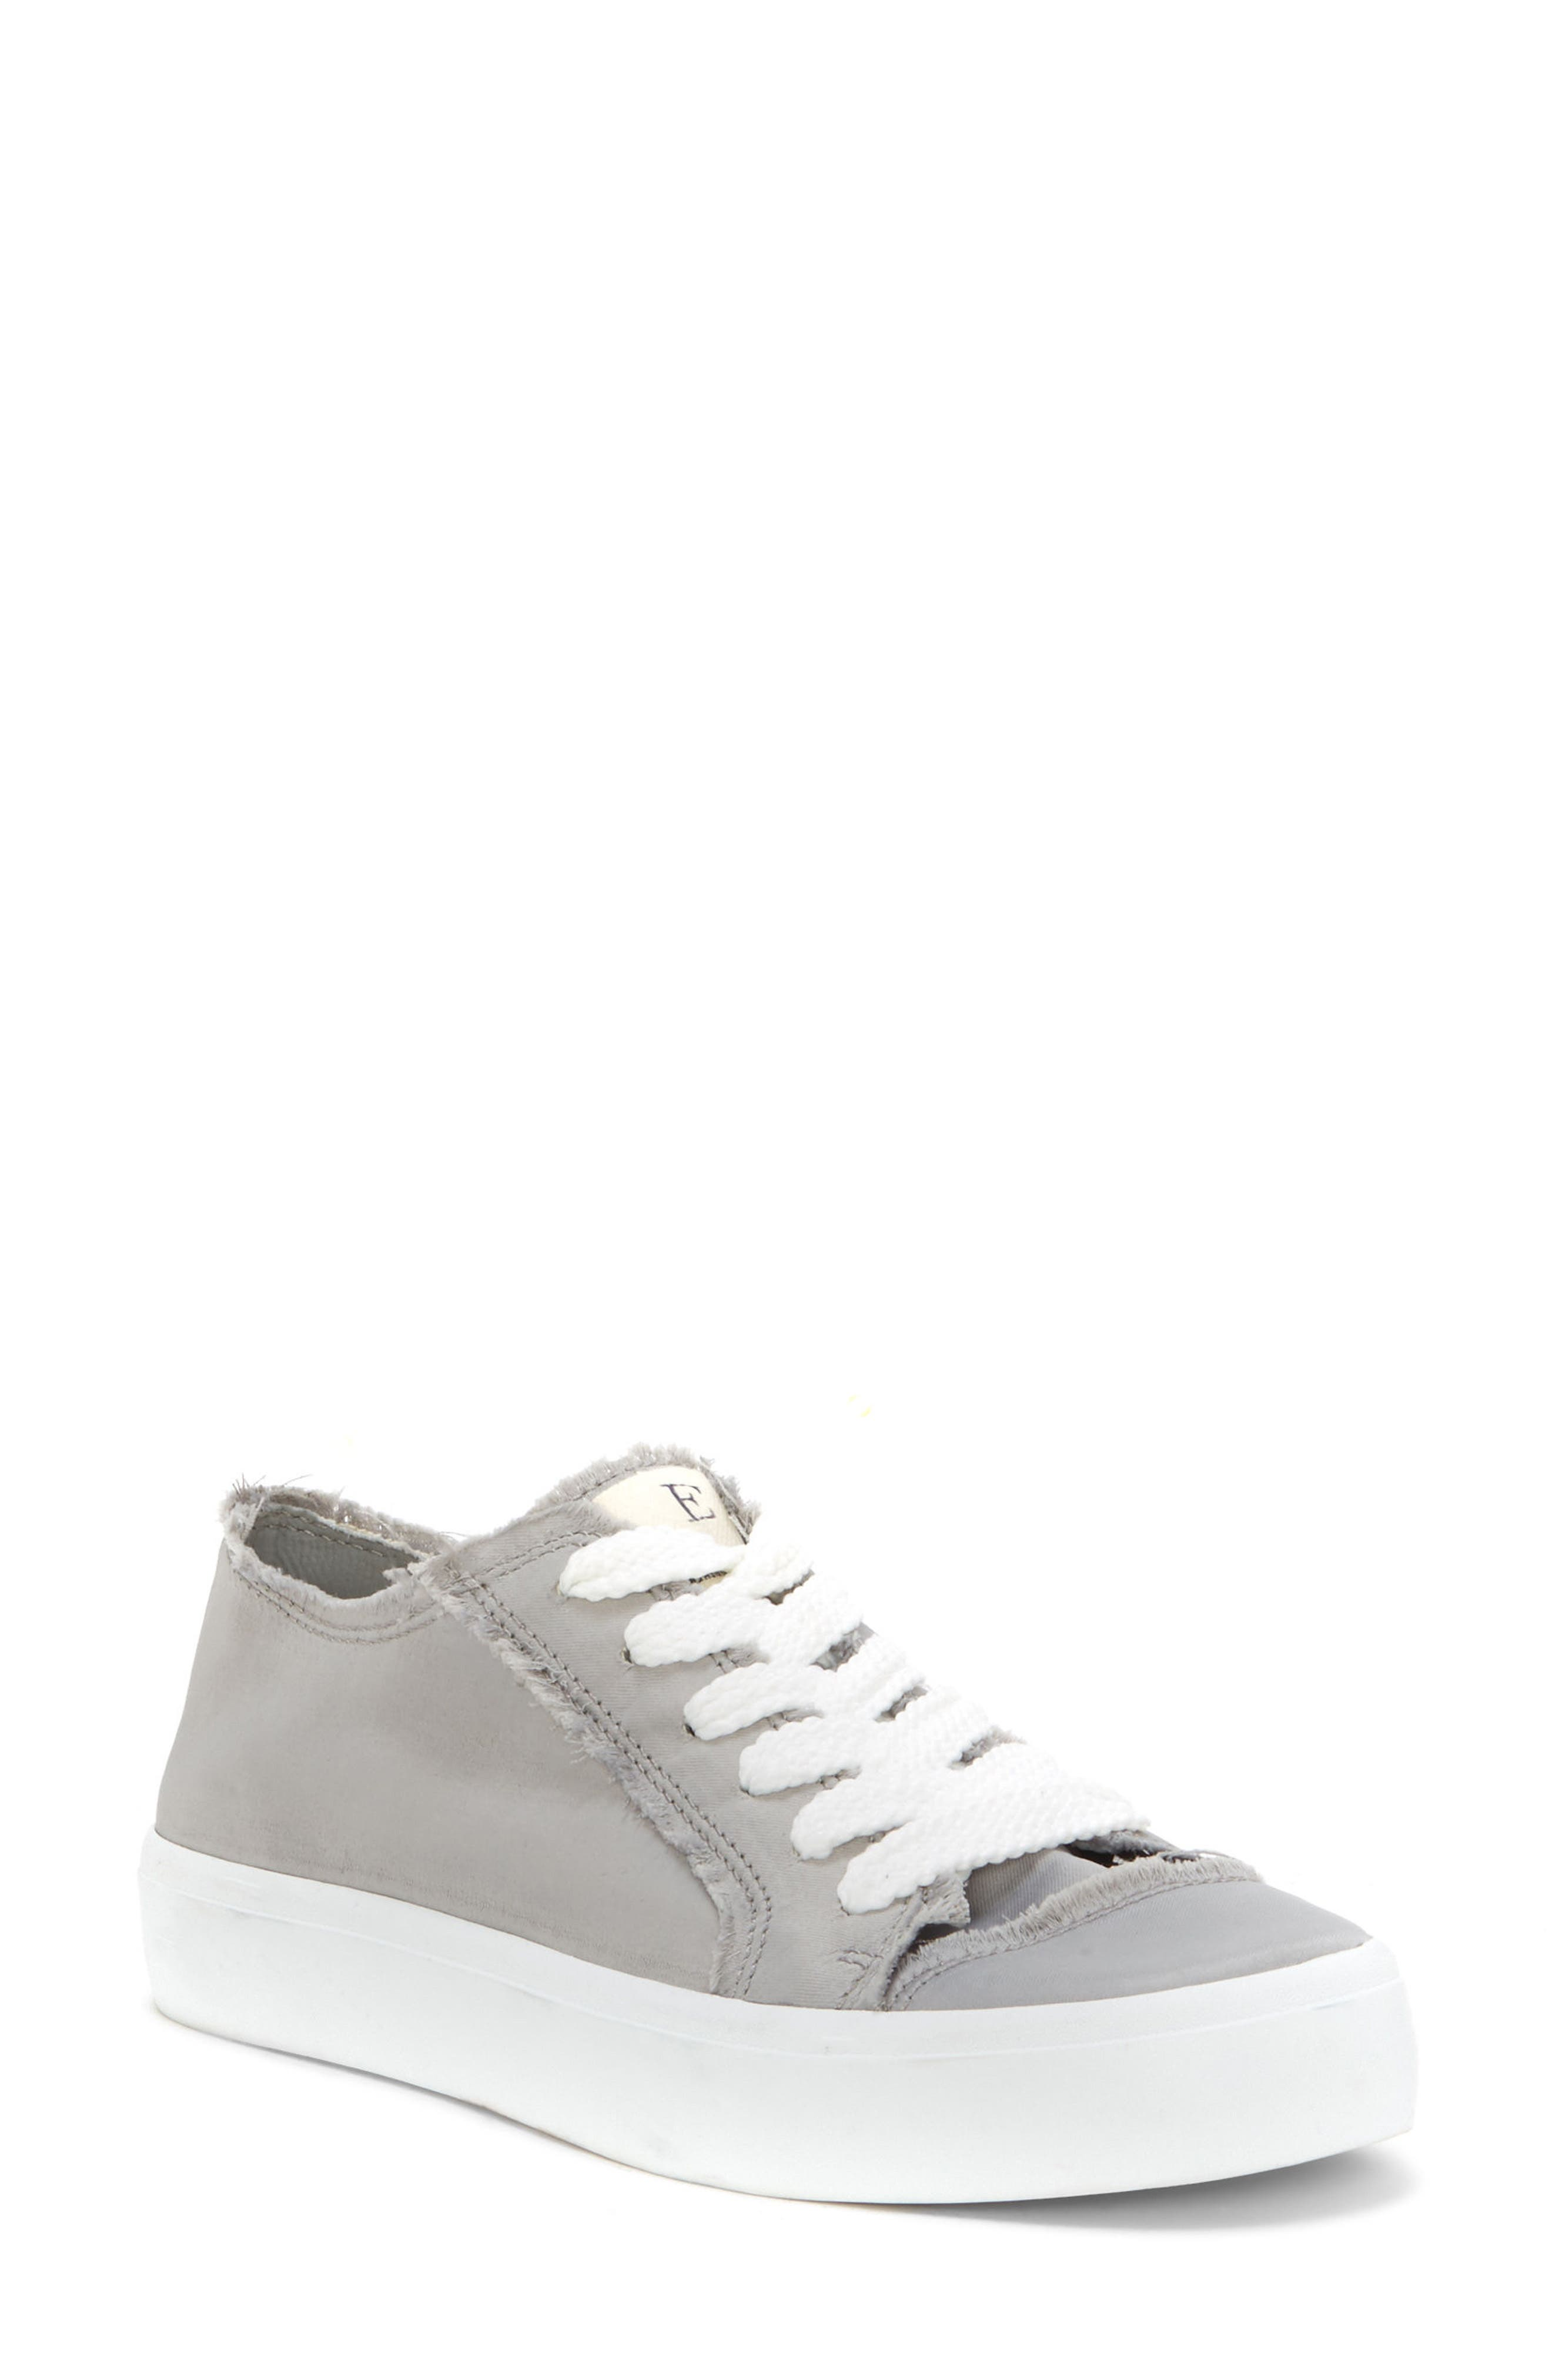 Dorin Sneaker,                         Main,                         color, Gravel Fabric